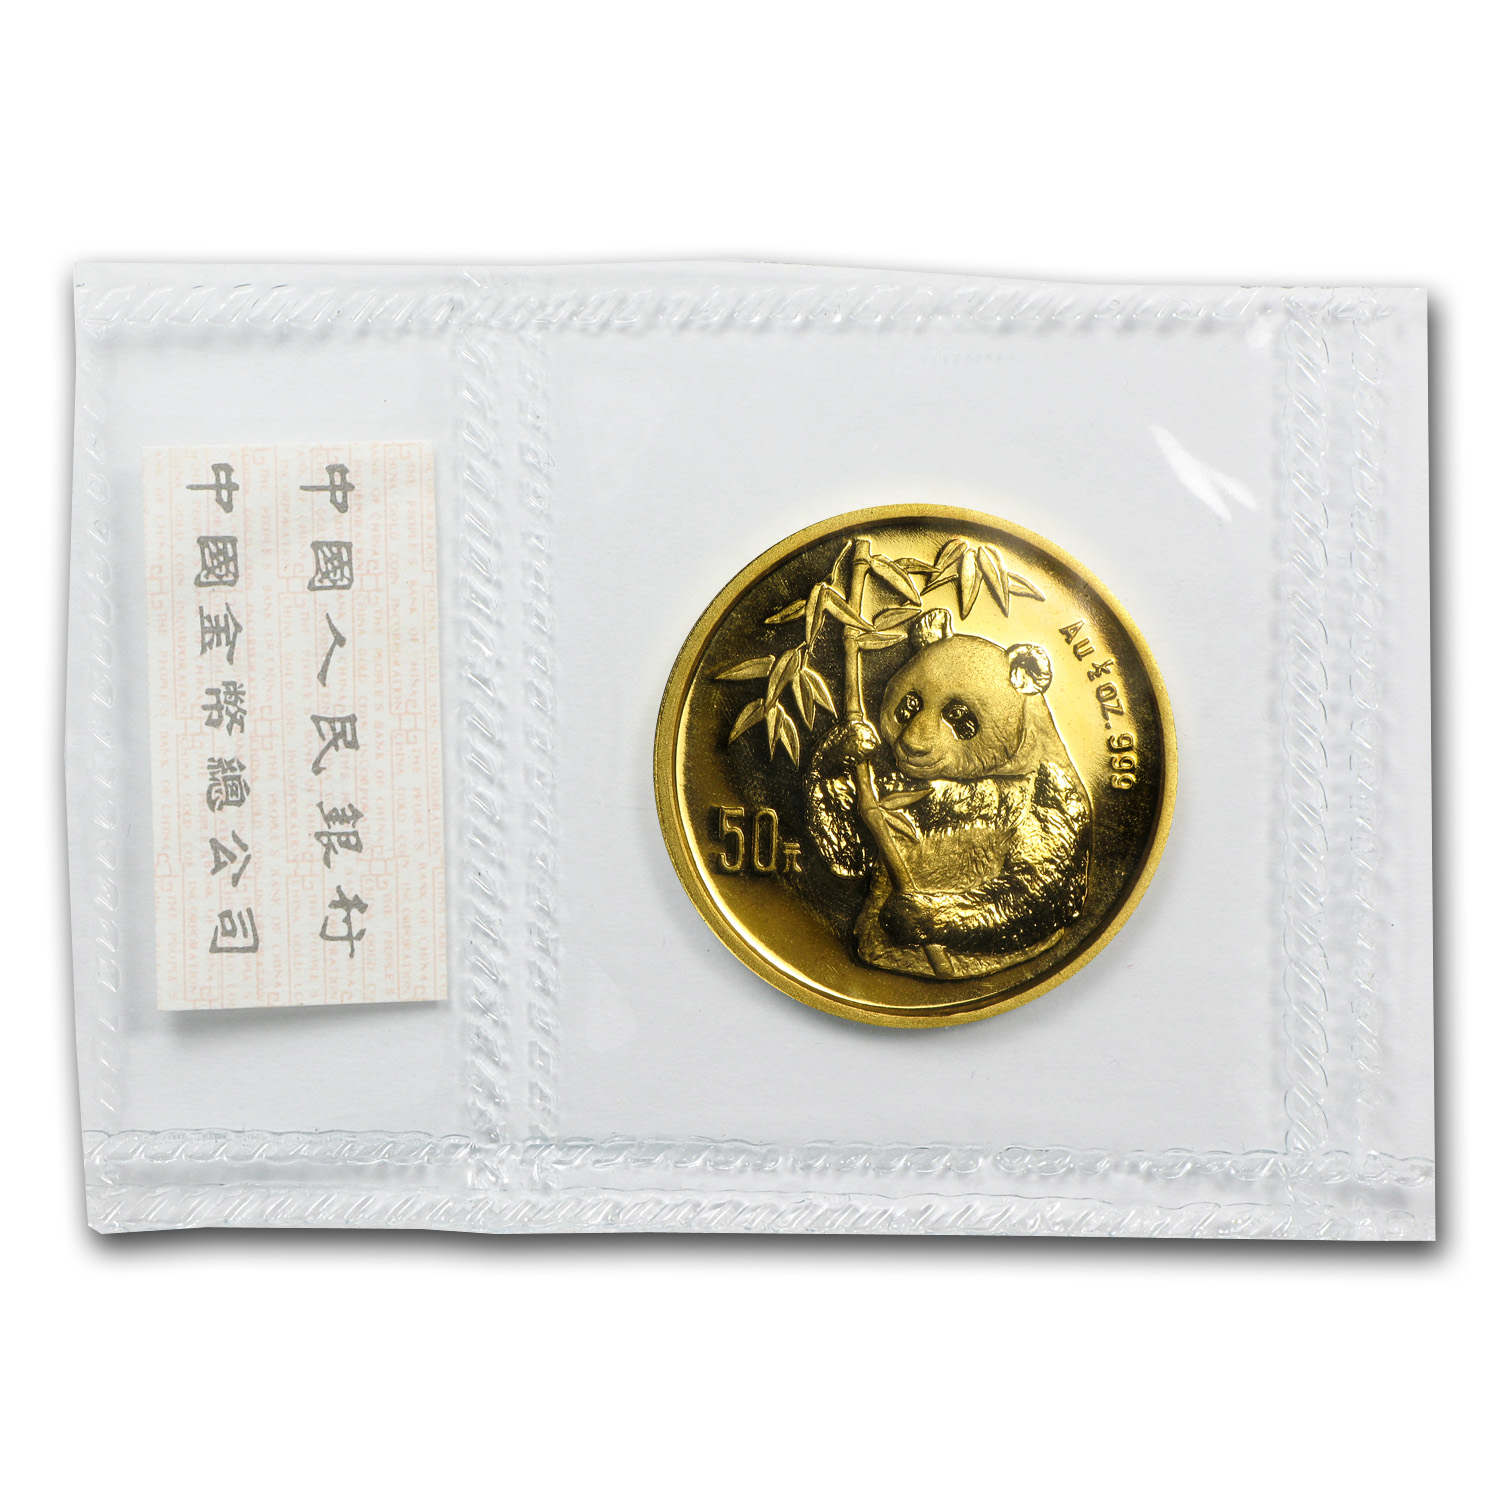 1995 1/2 oz Gold Chinese Panda Large Date BU (Sealed)